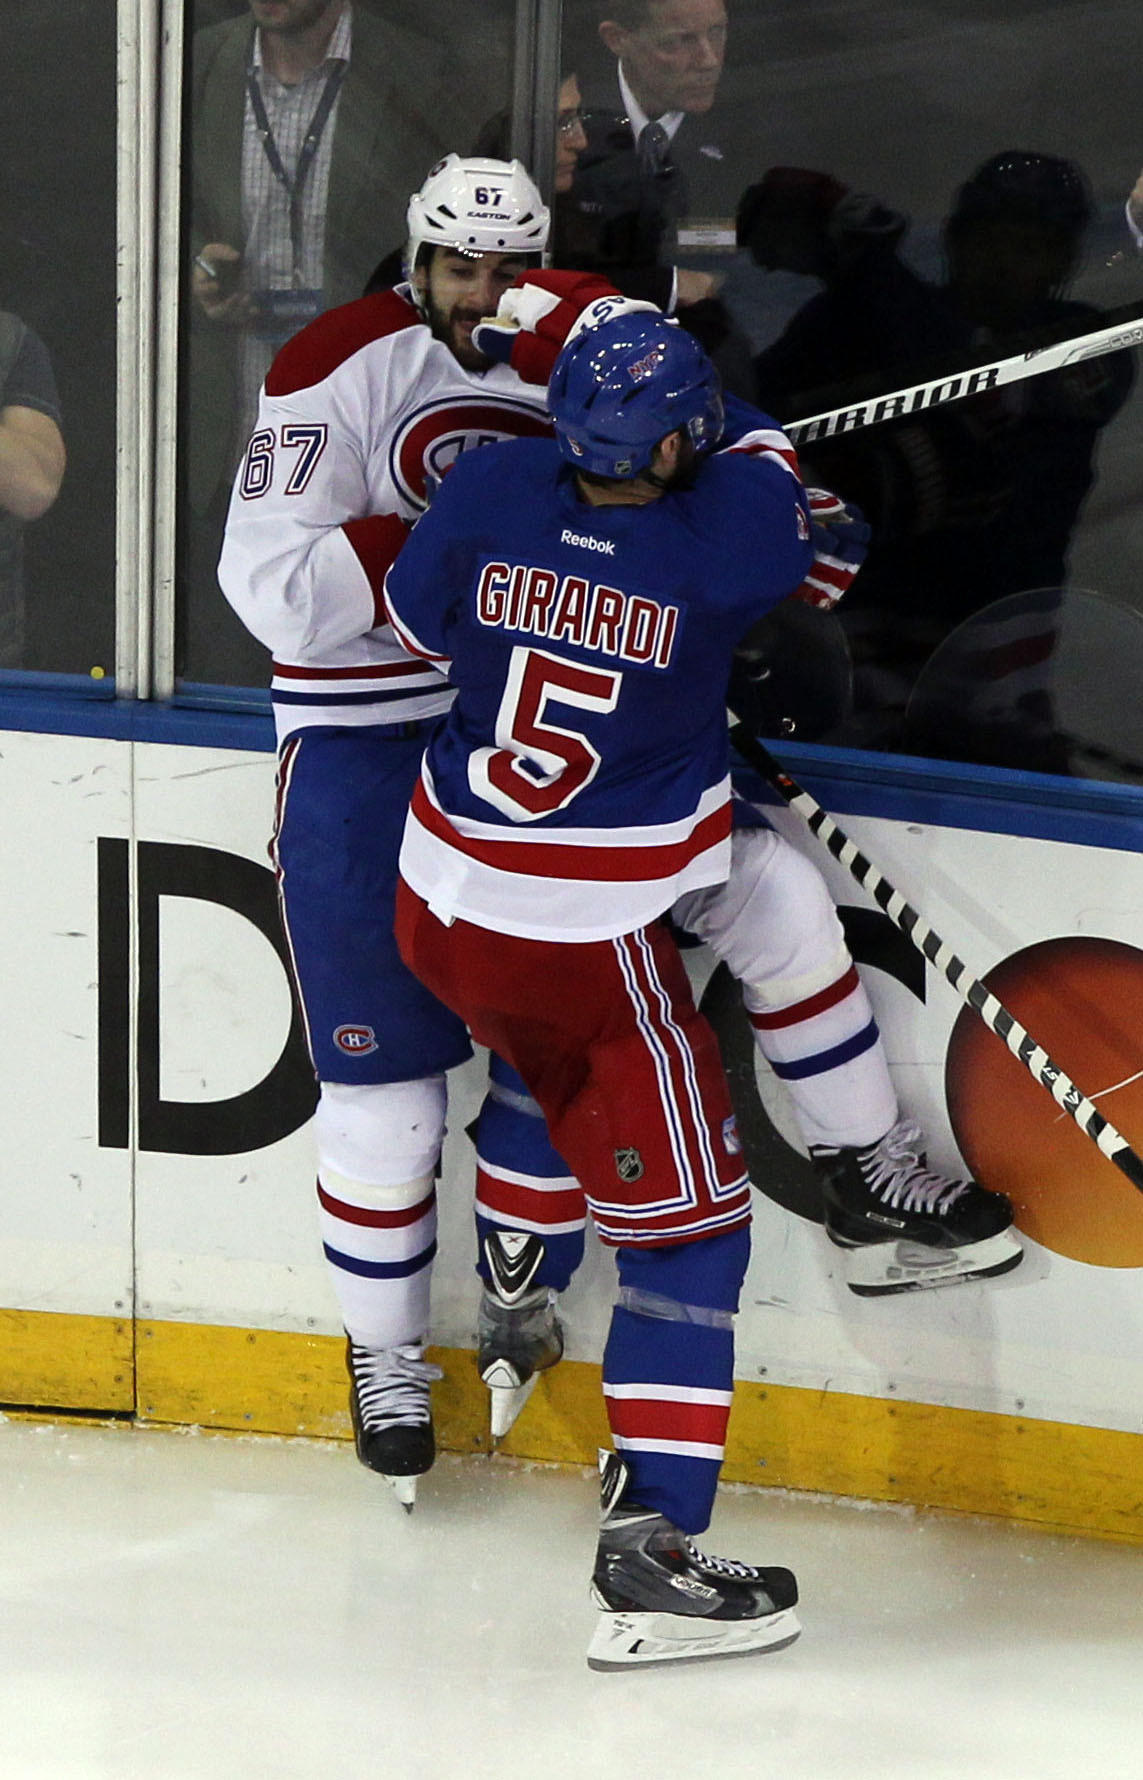 Rangers defenseman Dan Girardi, seen here checking Montreal Canadiens left wing Max Pacioretty in game six of the Eastern Conference Finals, is one of 10 players on the Rangers who spent time with the Hartford Wolf Pack.